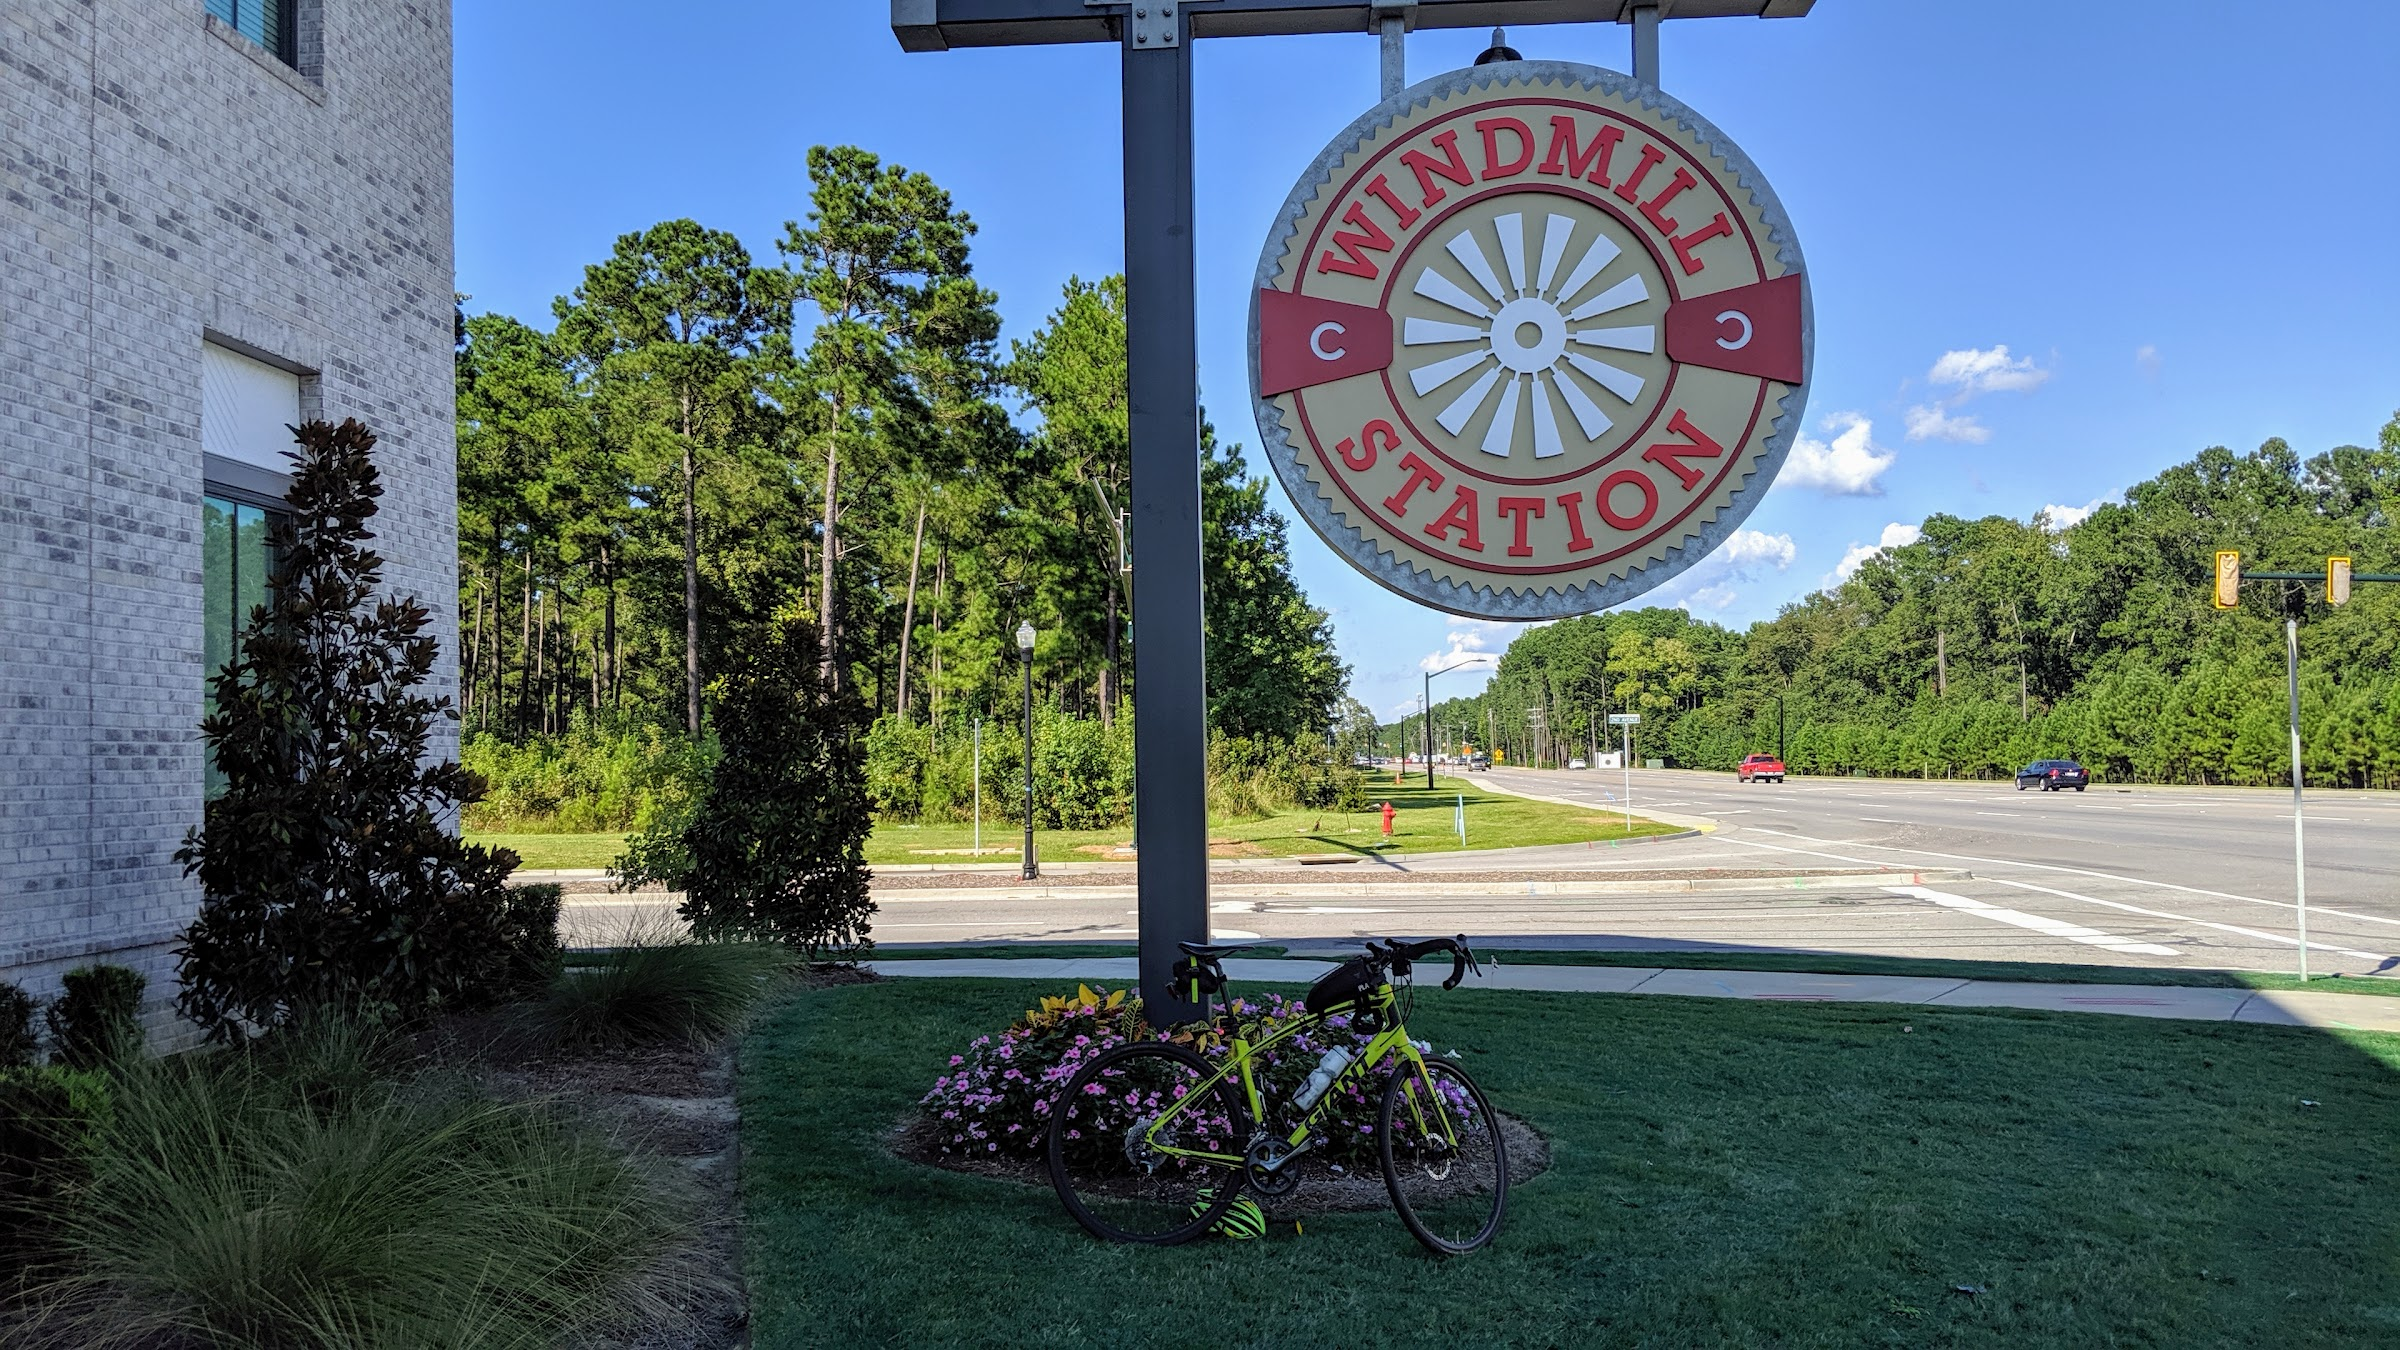 Bicycle in front of Windmill Station sign